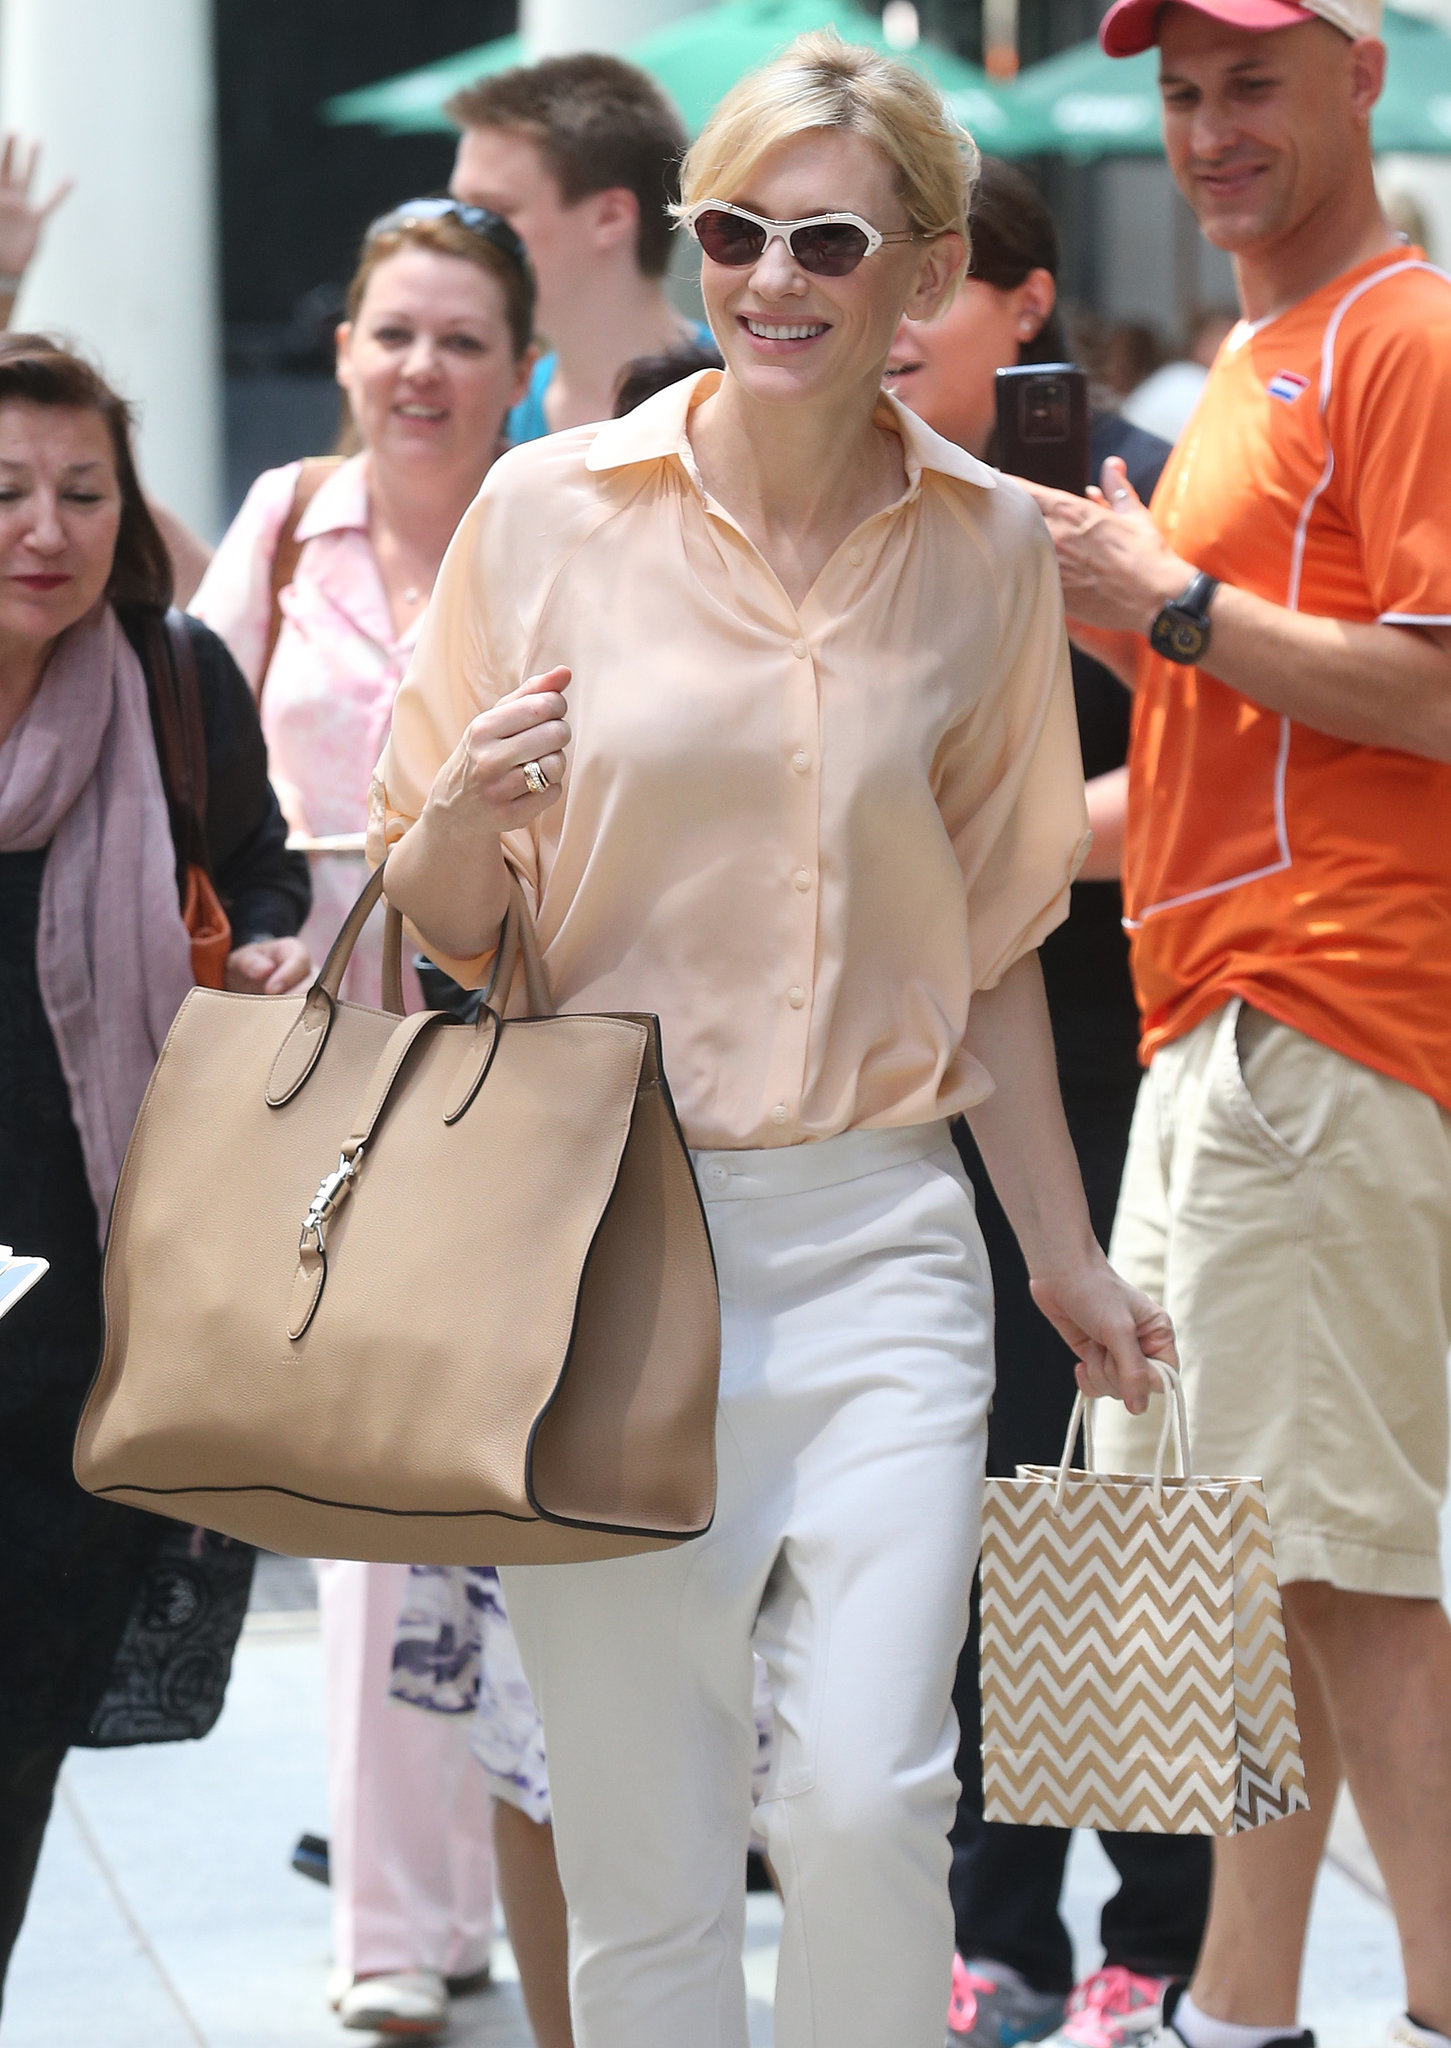 Cate Blanchett was all smiles in NYC on Saturday.